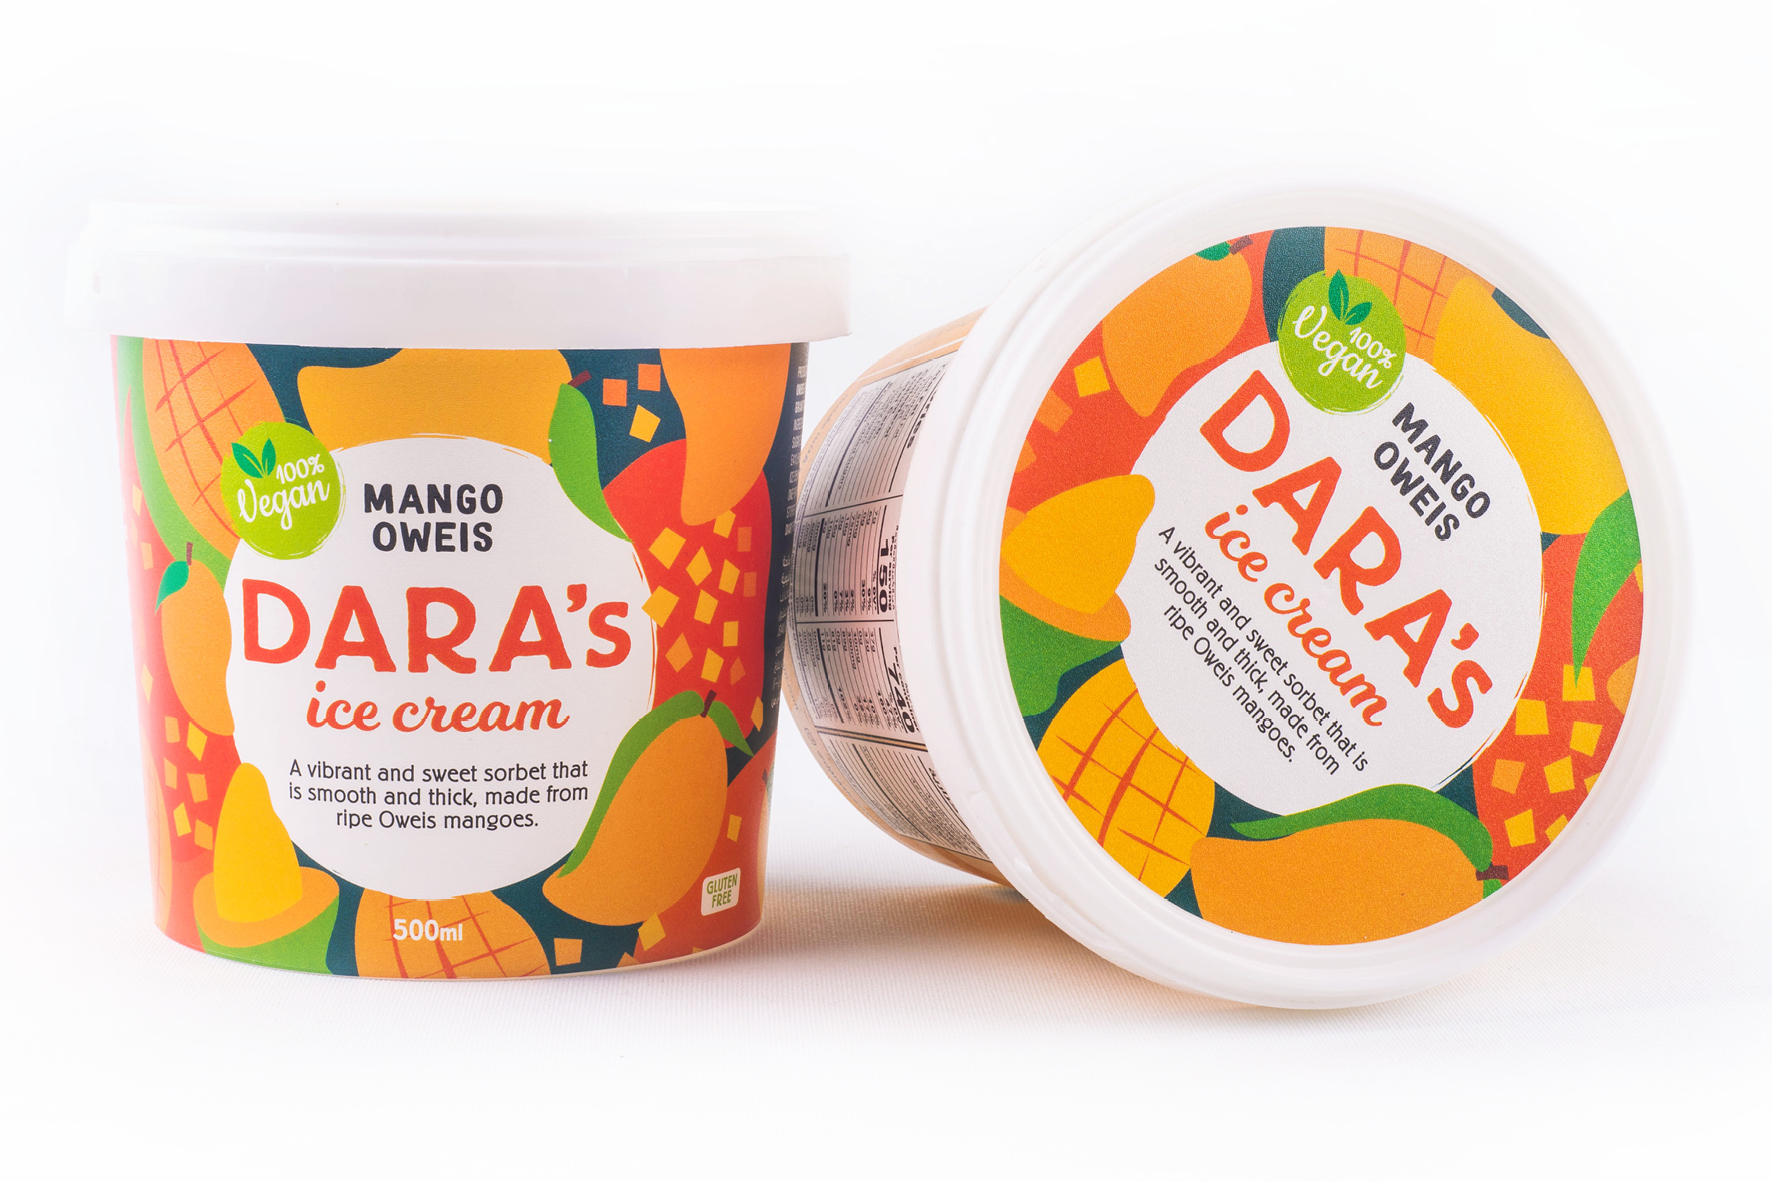 New Ice Cream Packaging Design for Dara's Ice Cream by Tandem